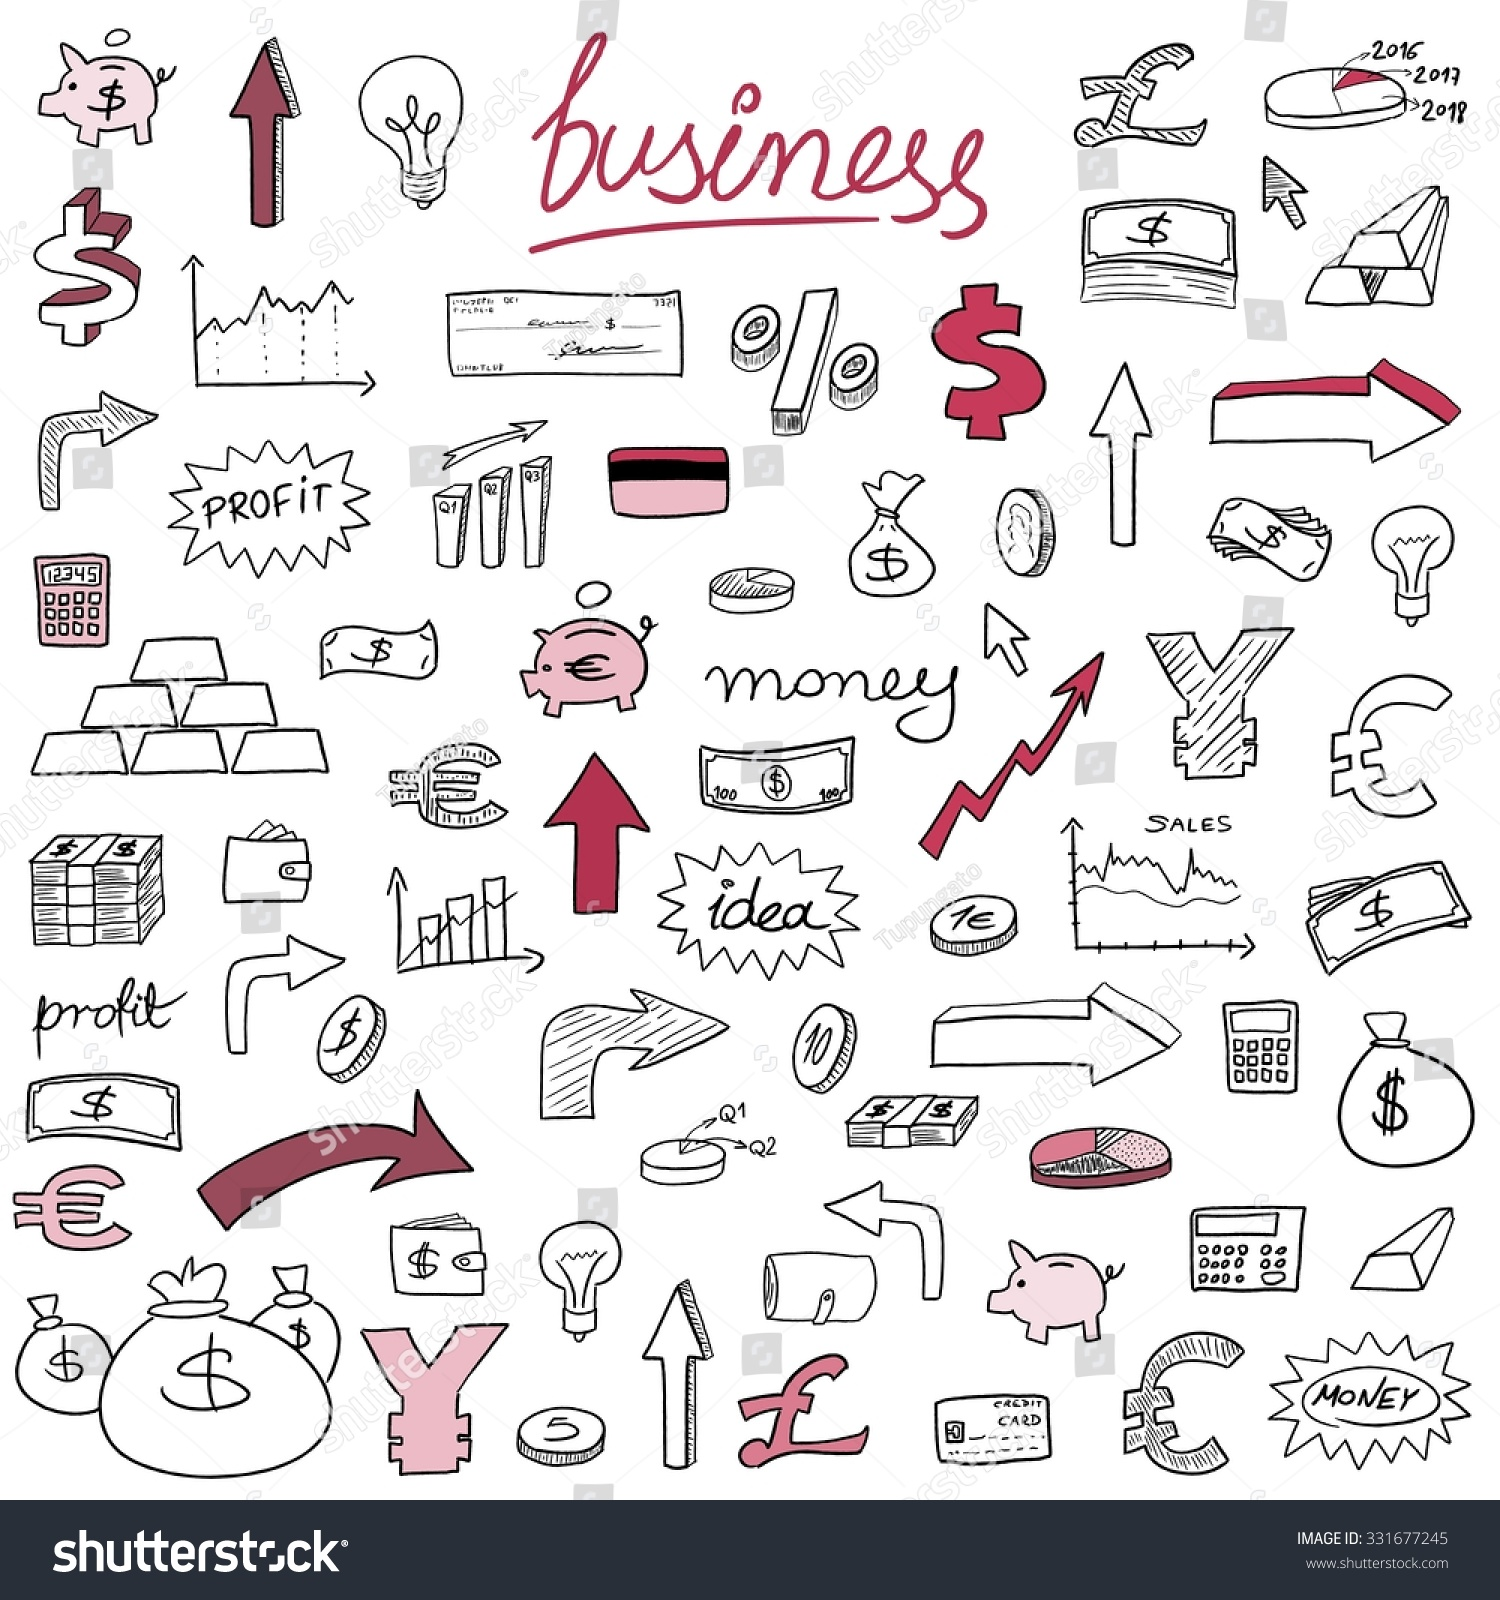 Business financial icons sketchy doodle style stock vector business financial icons sketchy doodle style illustration with money currencies and finance object symbols biocorpaavc